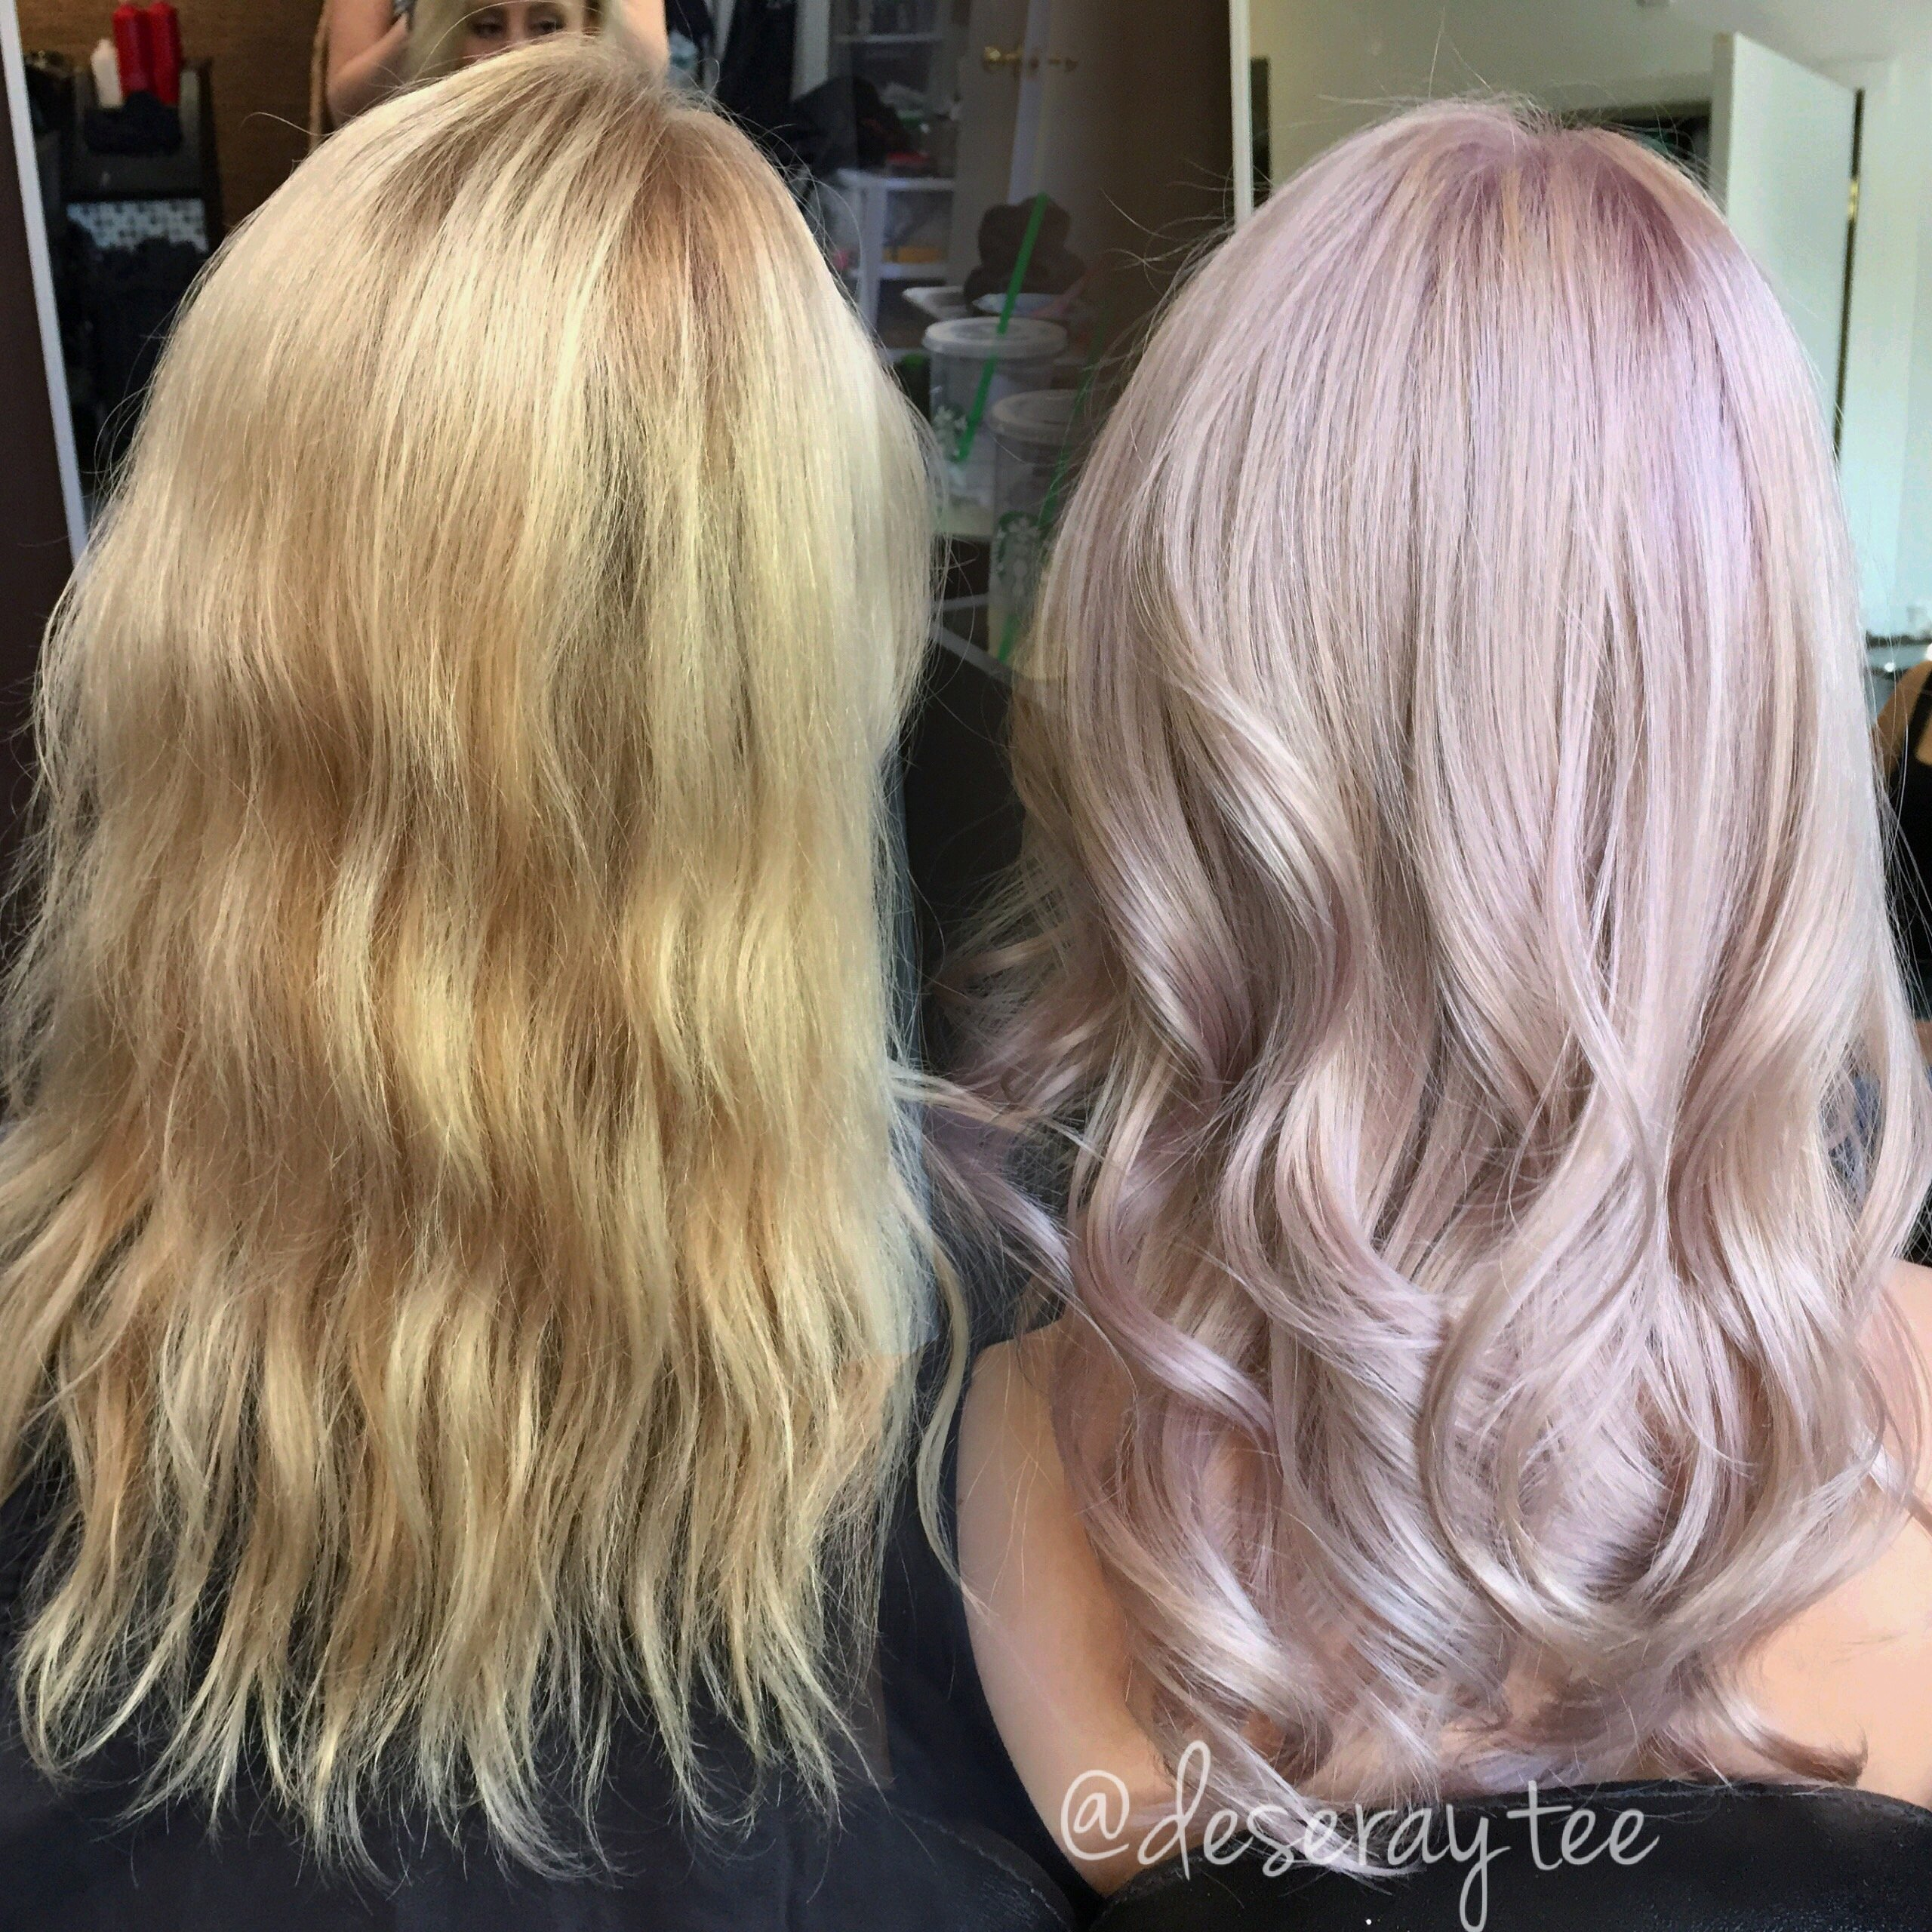 Transformation Pretty In Pale Lavender Pink Career